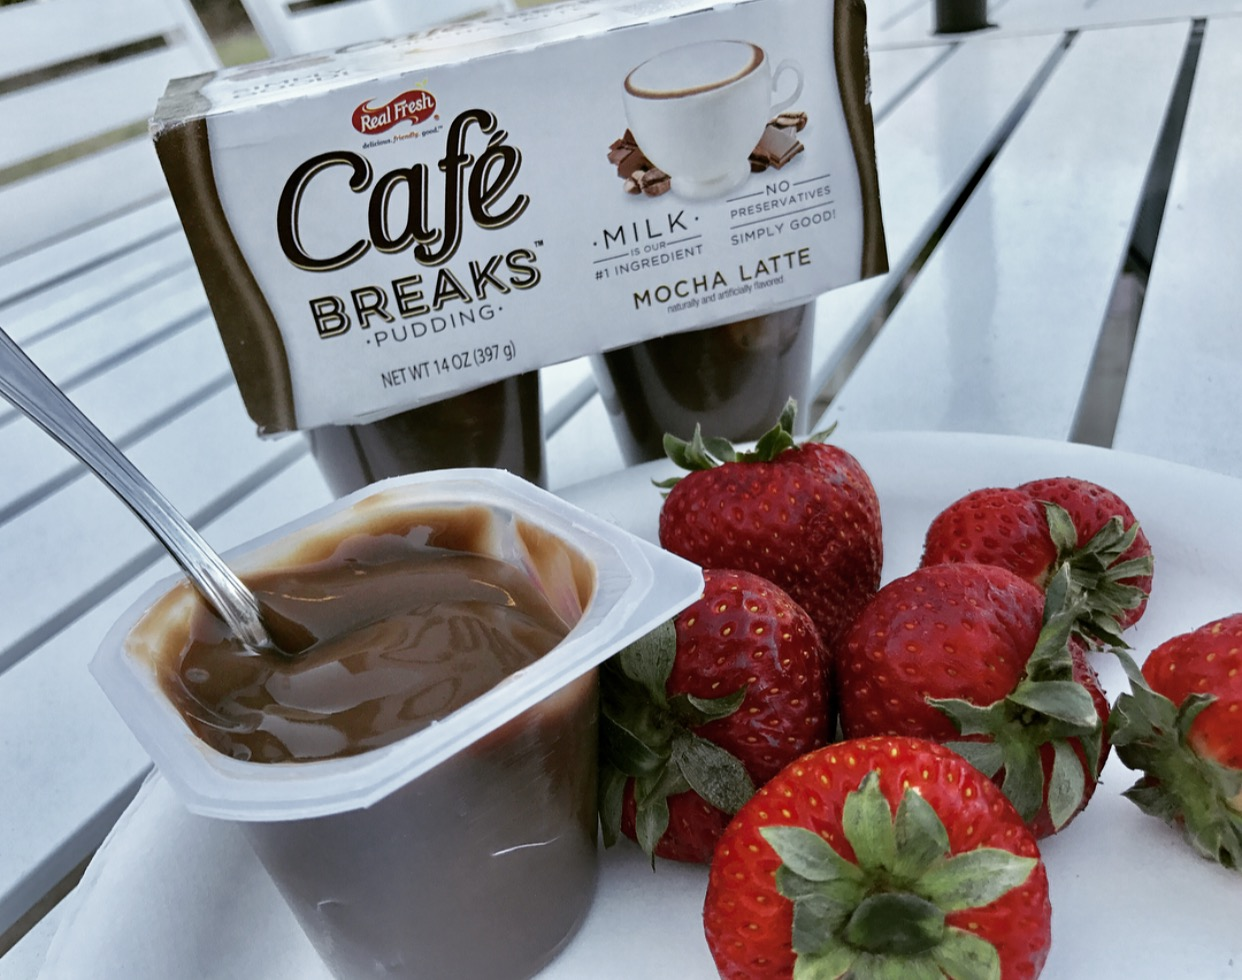 #lovecafebreaks #CafeBreaksMom #food #foodie #ad